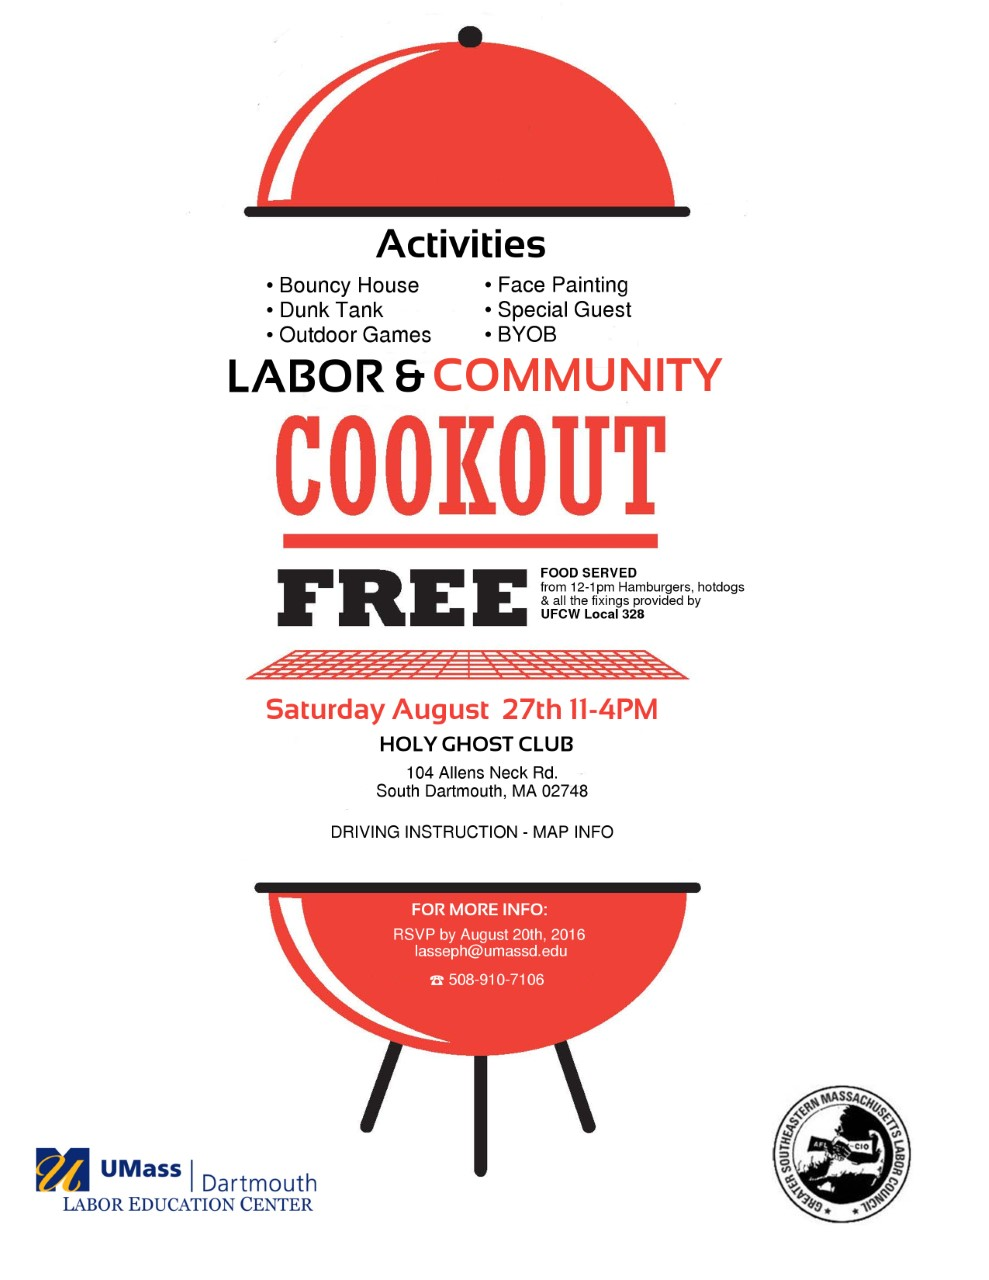 labor and community cookout